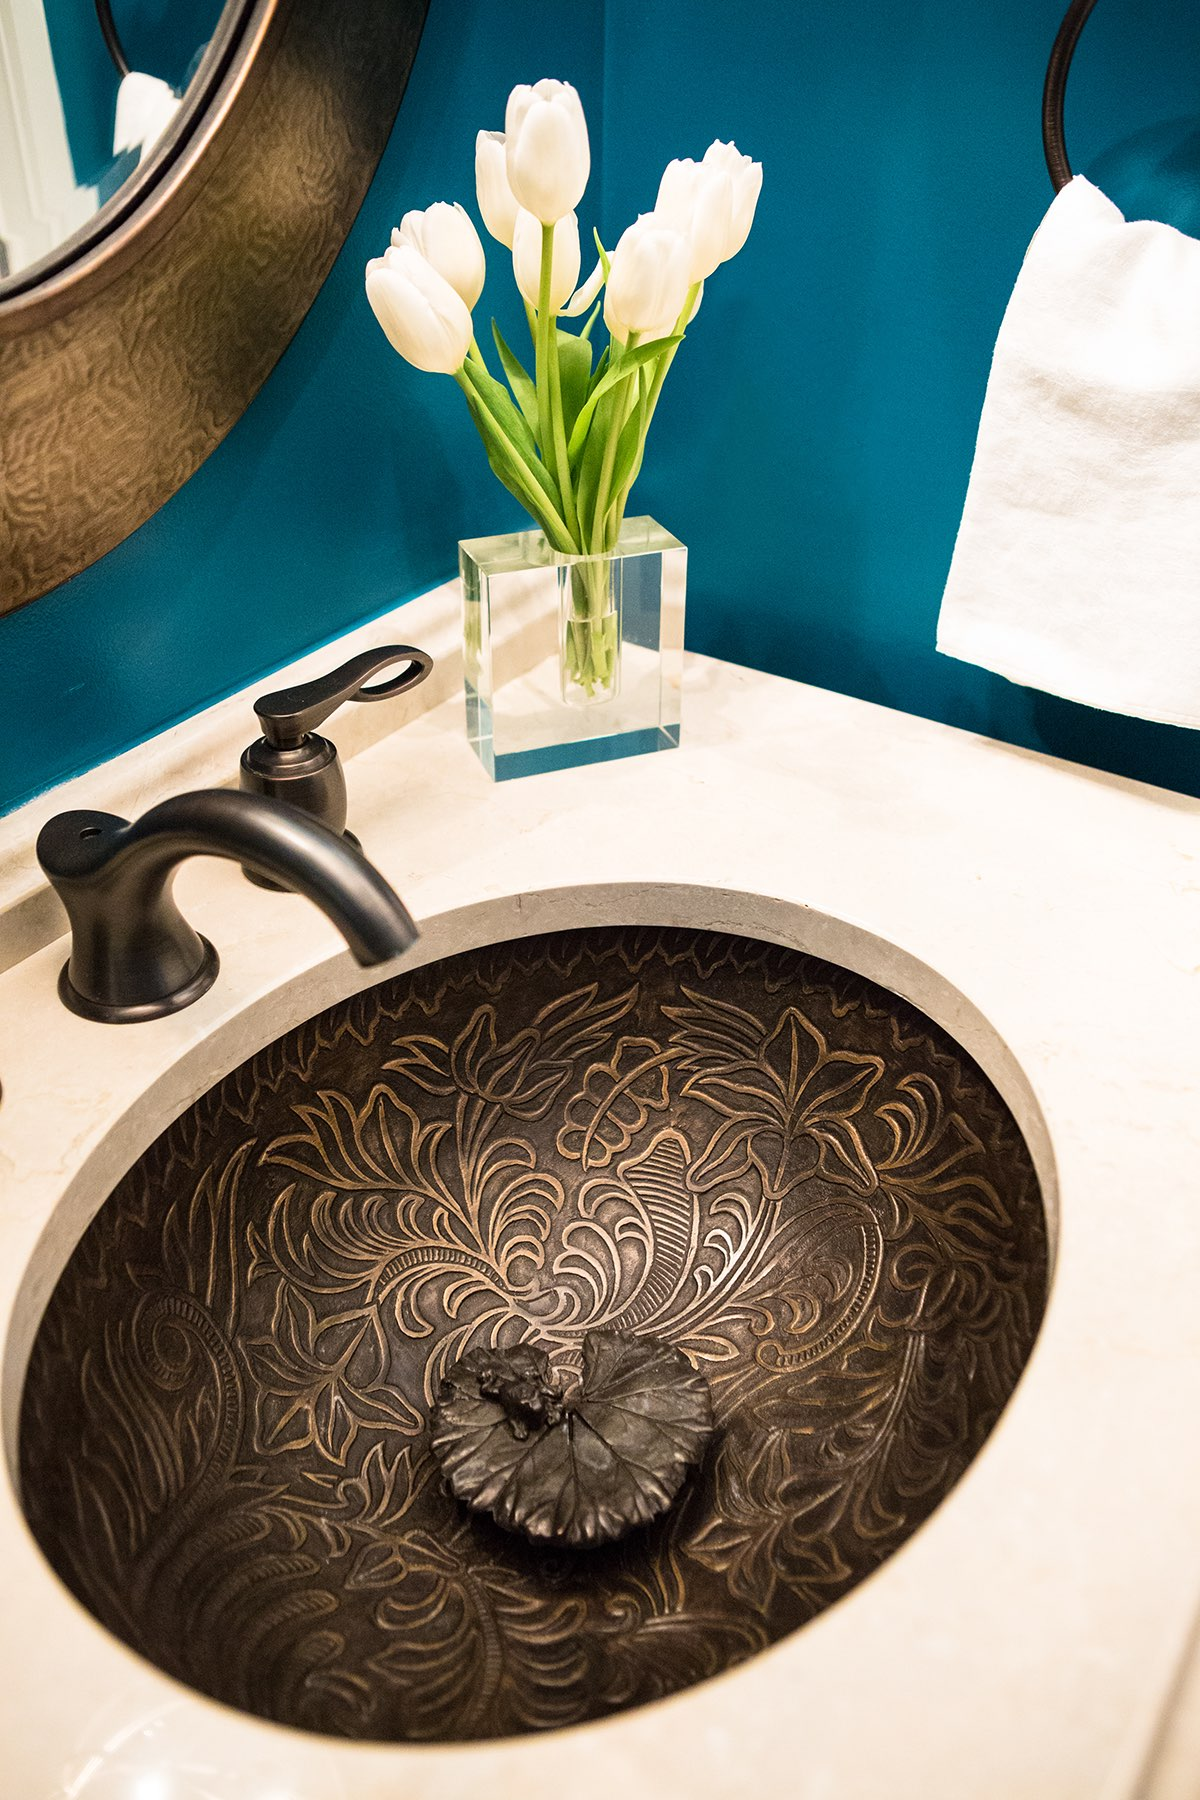 Bronze powder-room sink with lily design and lily pad sink stopper with unique tiny frog sculpture